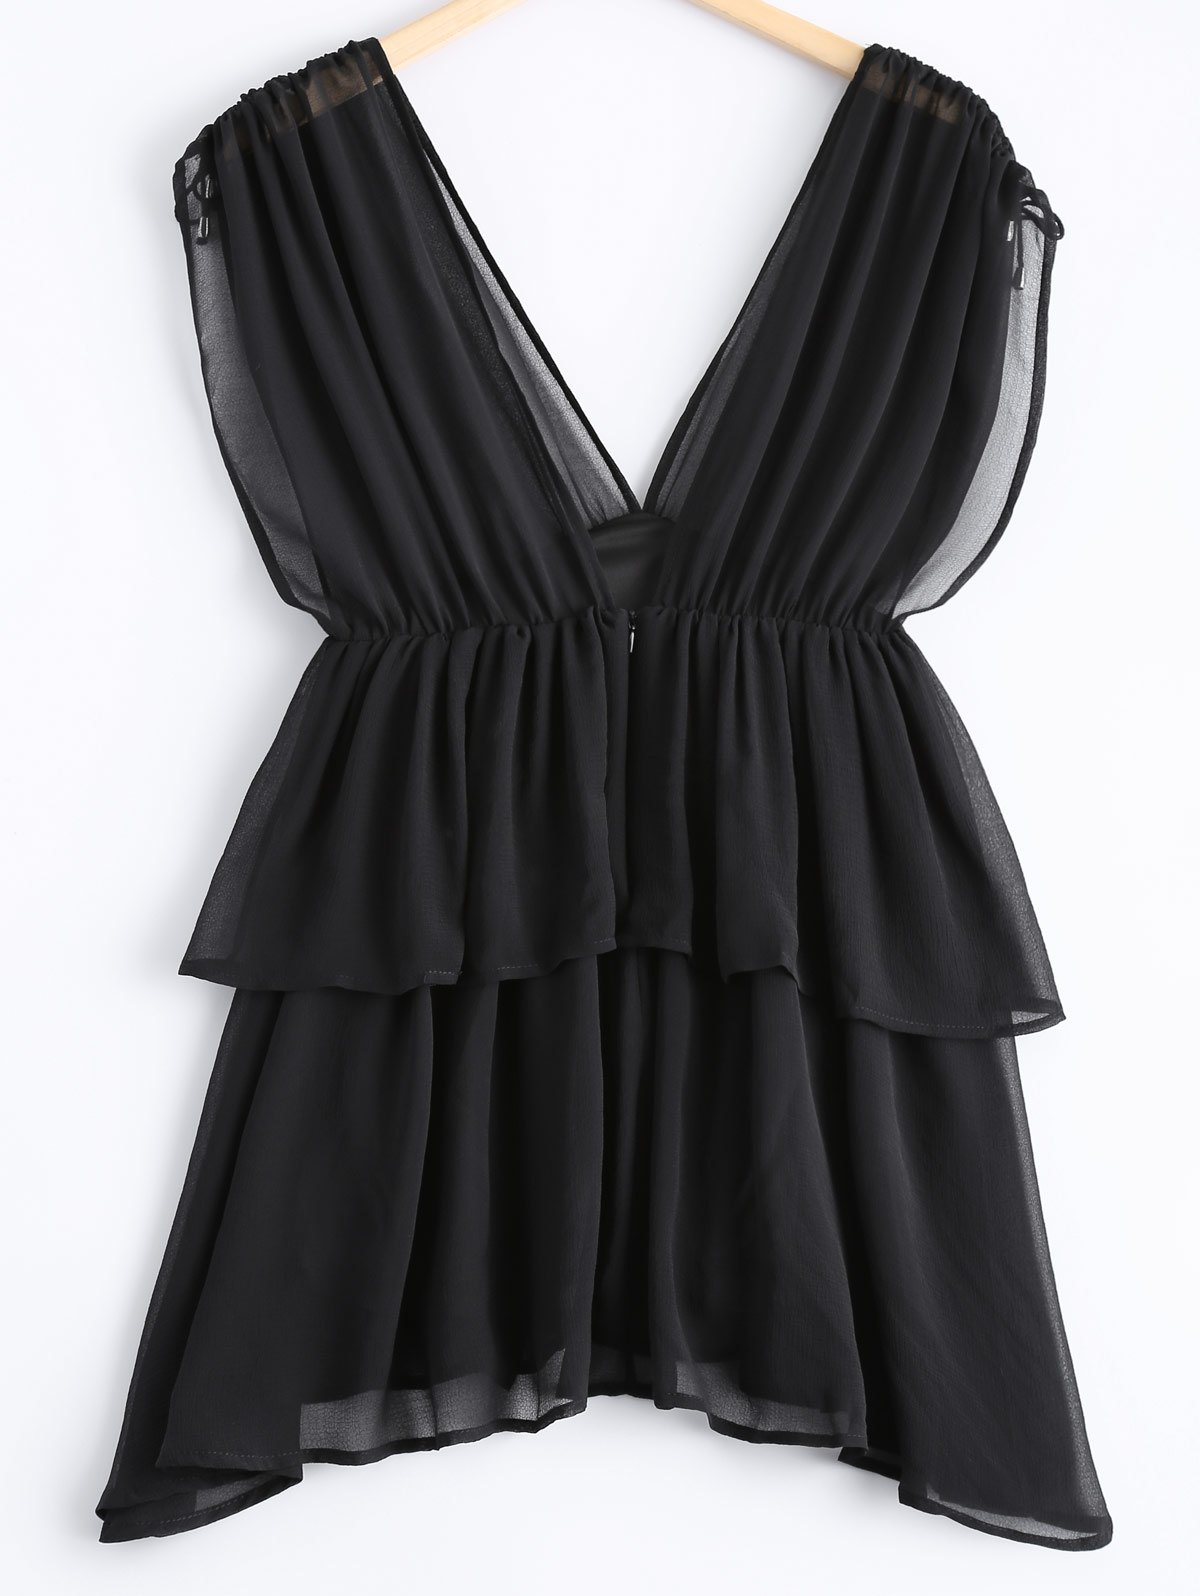 Casual Women's Plunging Neck Multi-layered Knot Cap Sleeves Chiffon Blouse - BLACK M